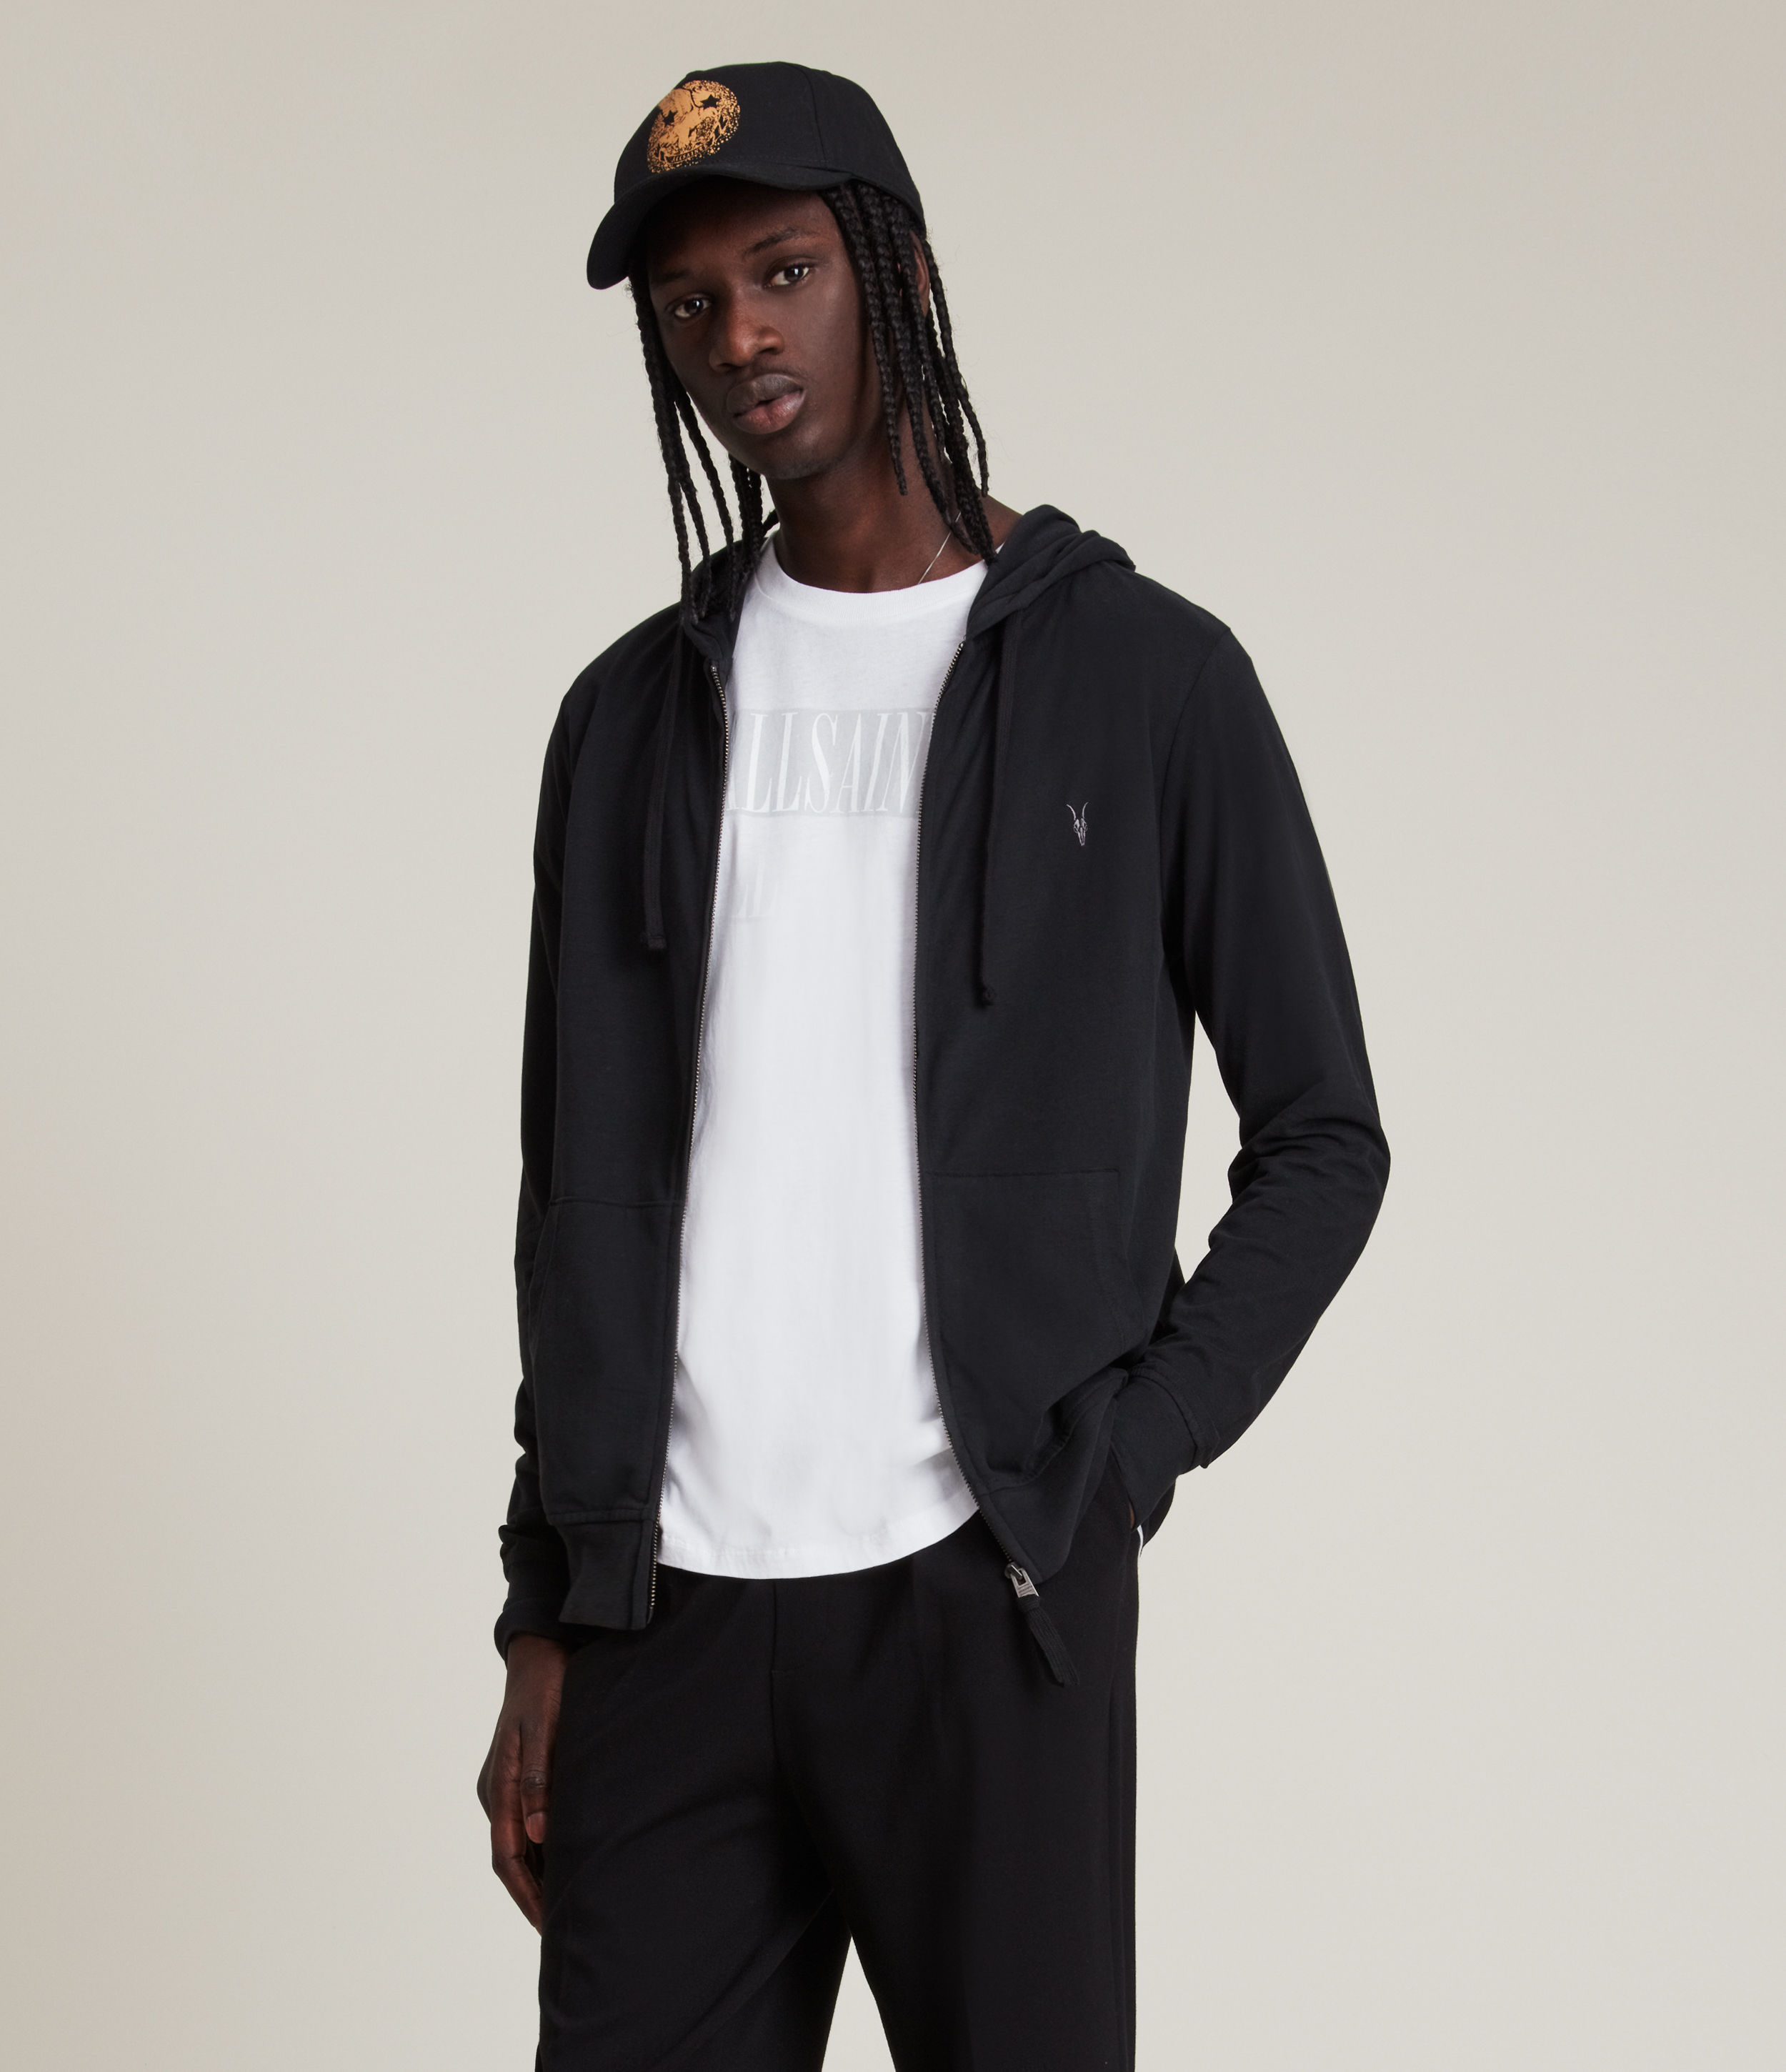 AllSaints Men's Cotton Regular Fit Zip Up Brace Hoodie, Black, Size: M